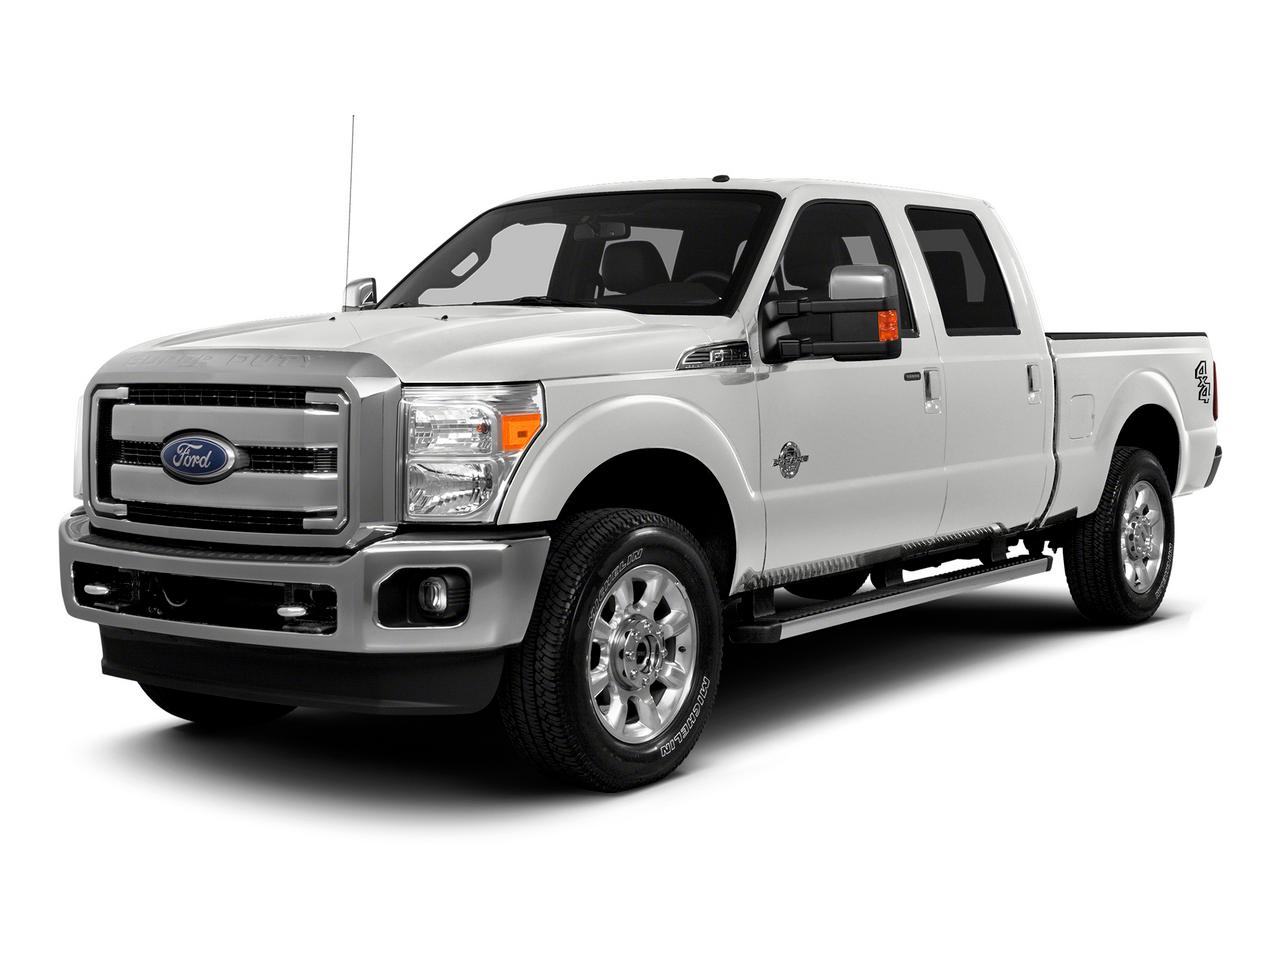 2015 Ford Super Duty F-250 SRW Vehicle Photo in Spokane, WA 99207